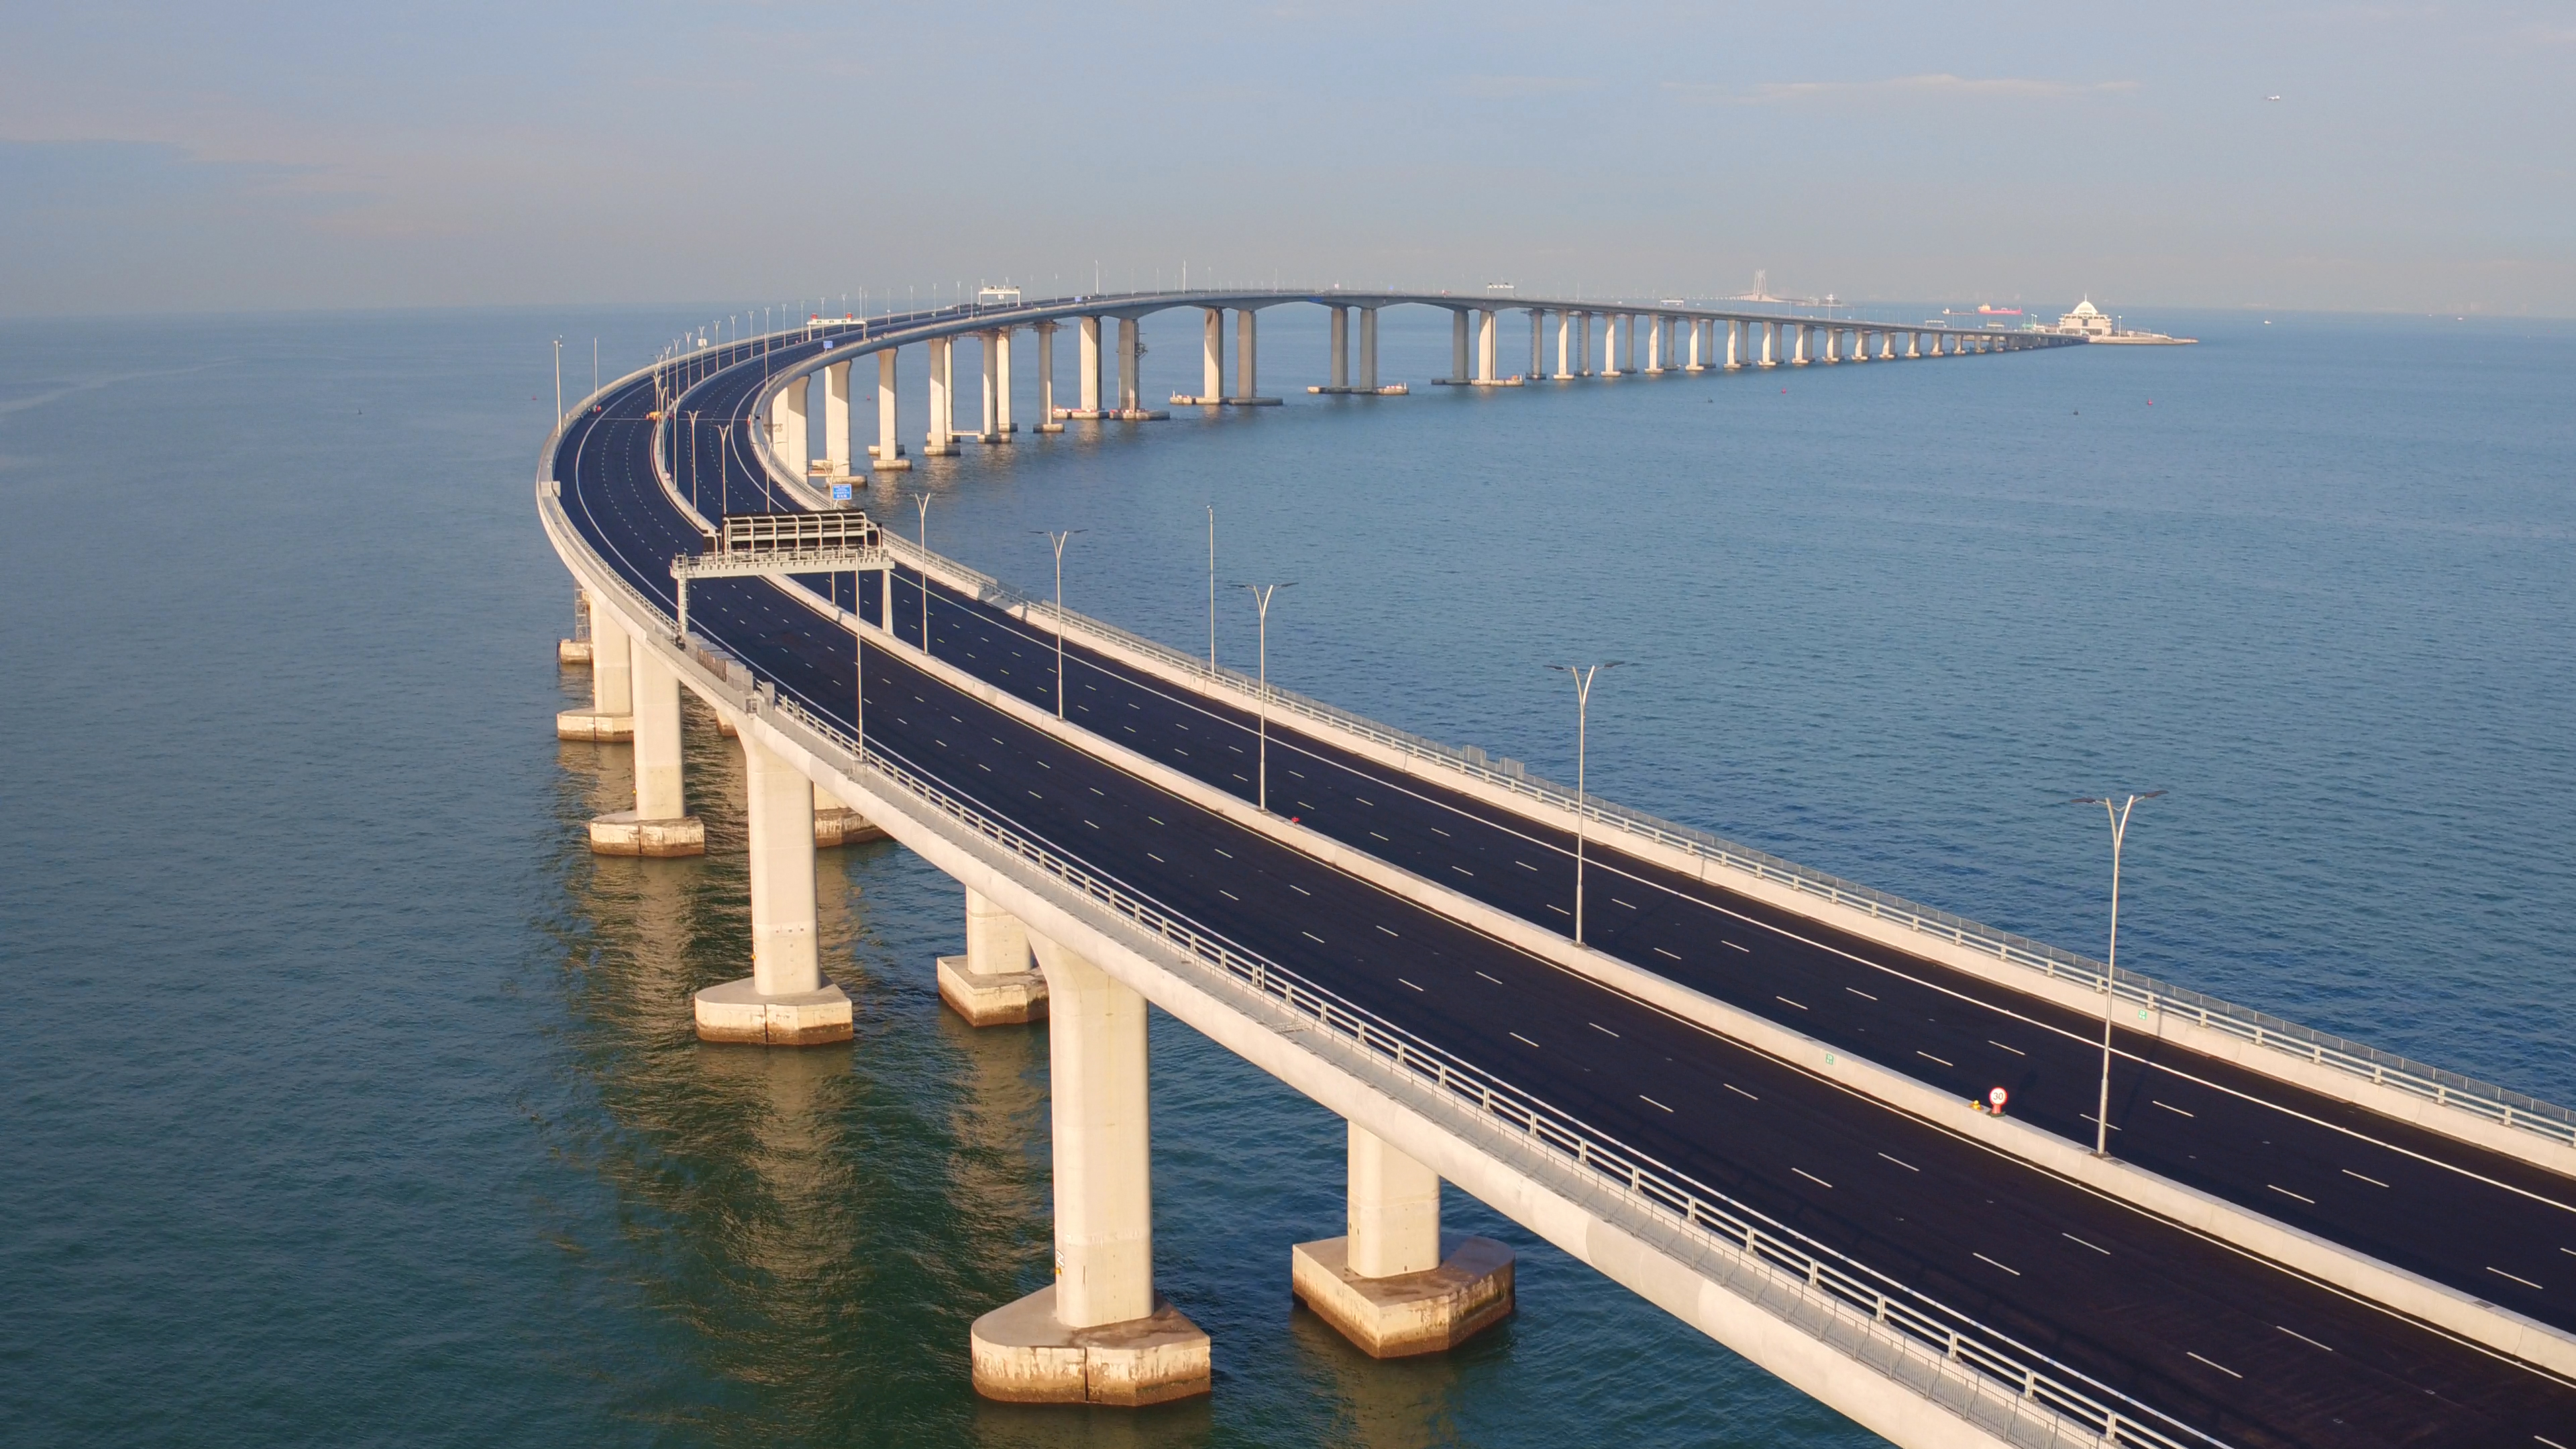 af80d8fa However, to cross the bridge, you'll need a special permit, according to  Lonely Planet, meaning private cars from Hong Kong and Macau cannot make  the ...